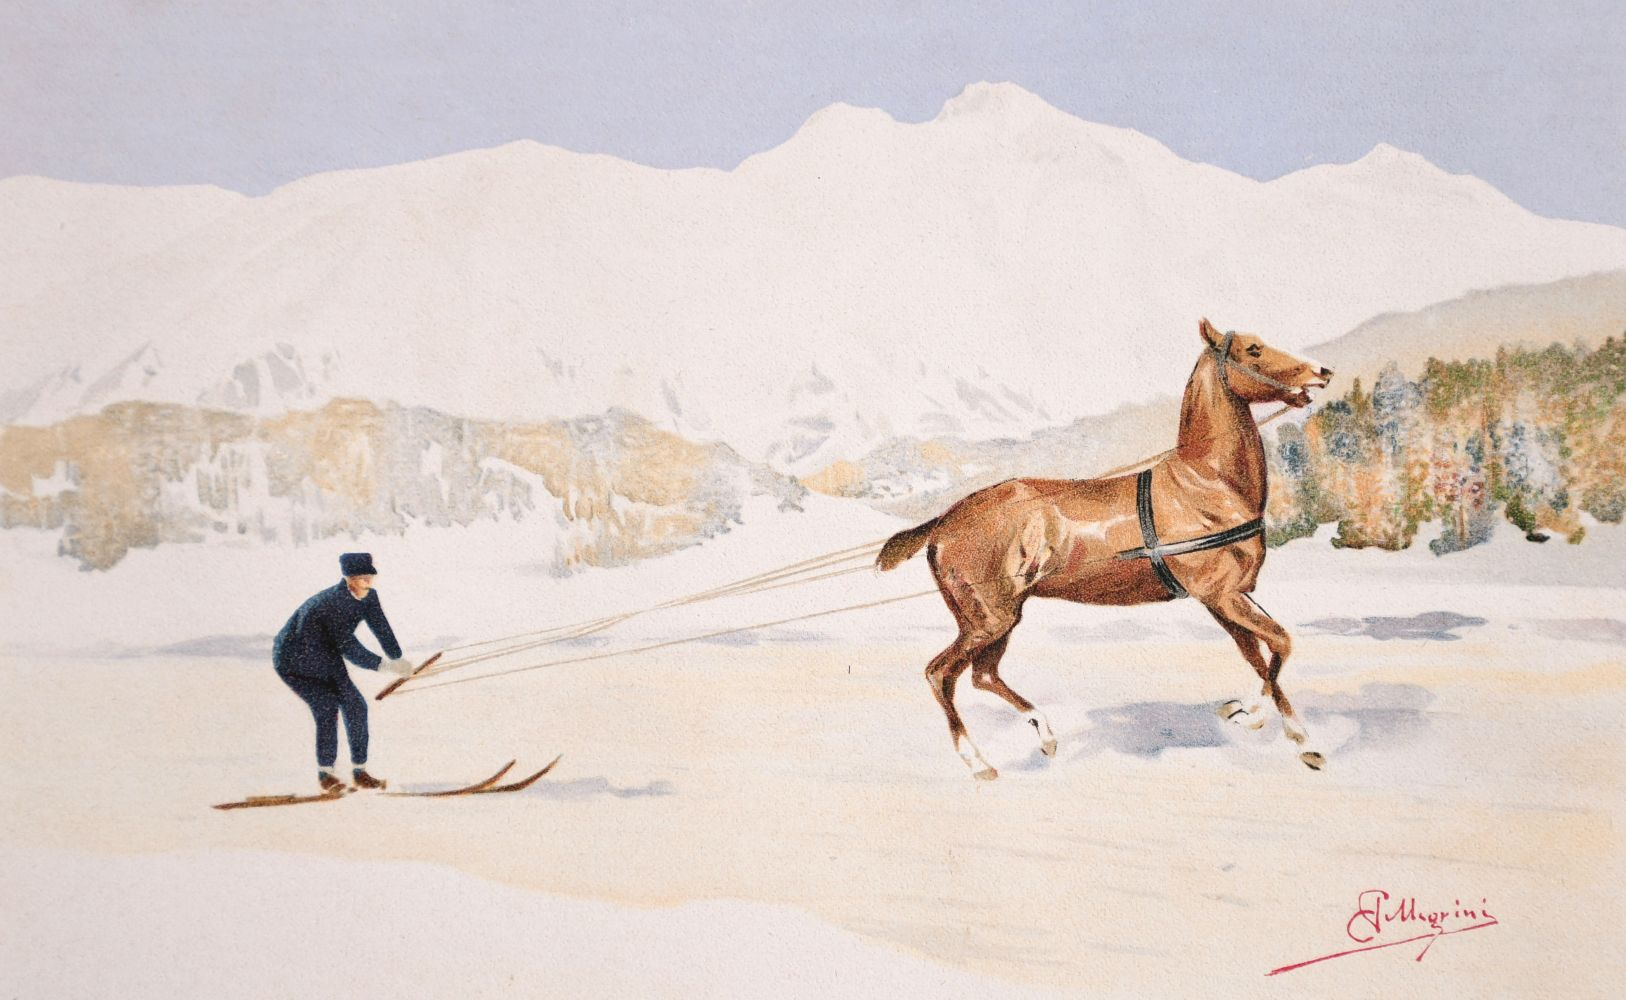 Carlo Pellegrini (1839-1889) Italian, 'Skijoring', A figure on skis being pulled behind a horse,